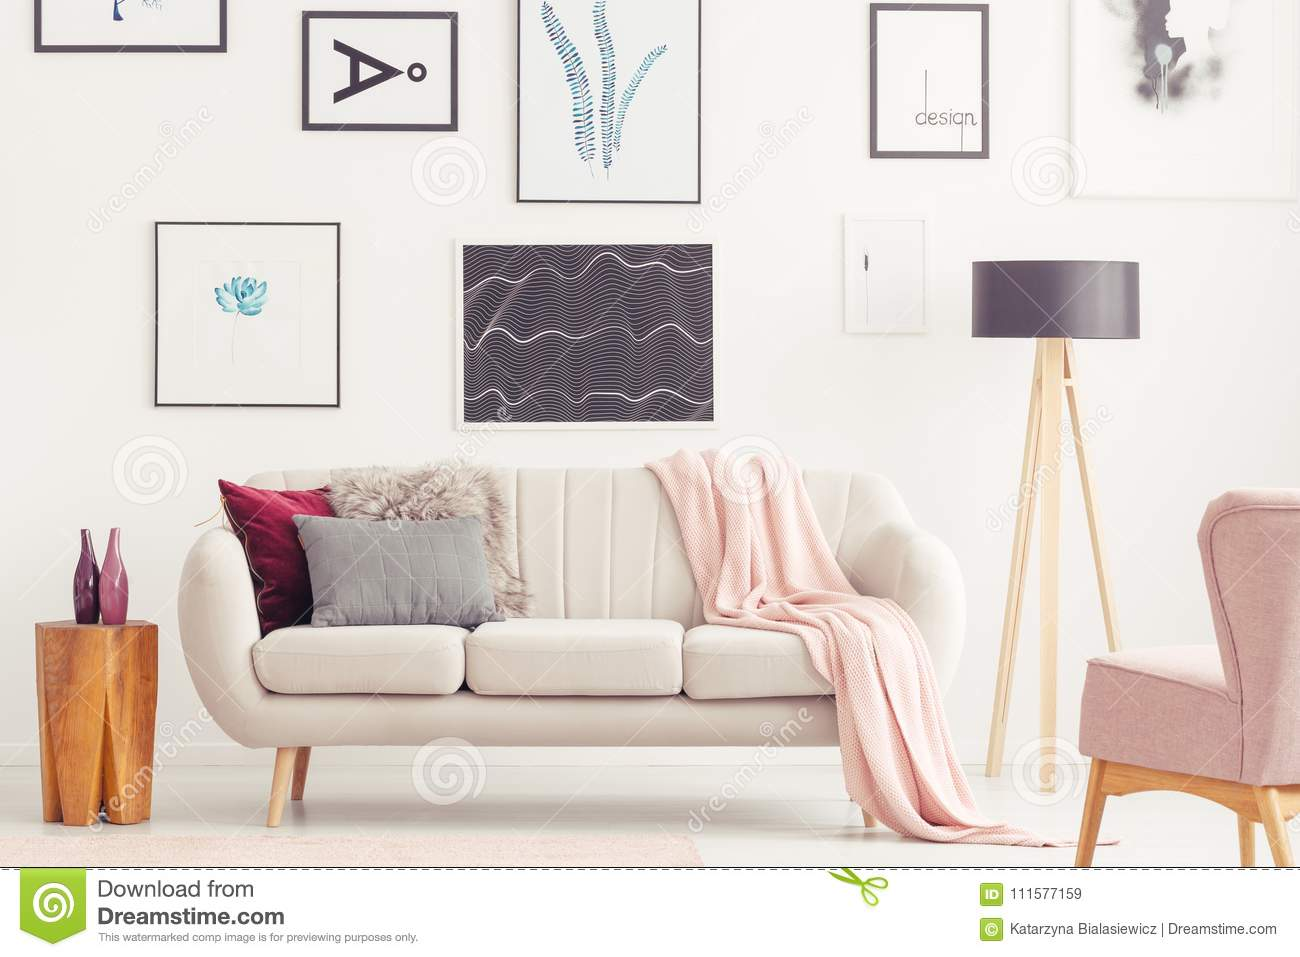 Pink Living Room With Posters Stock Image - Image of lamp, cushions ...